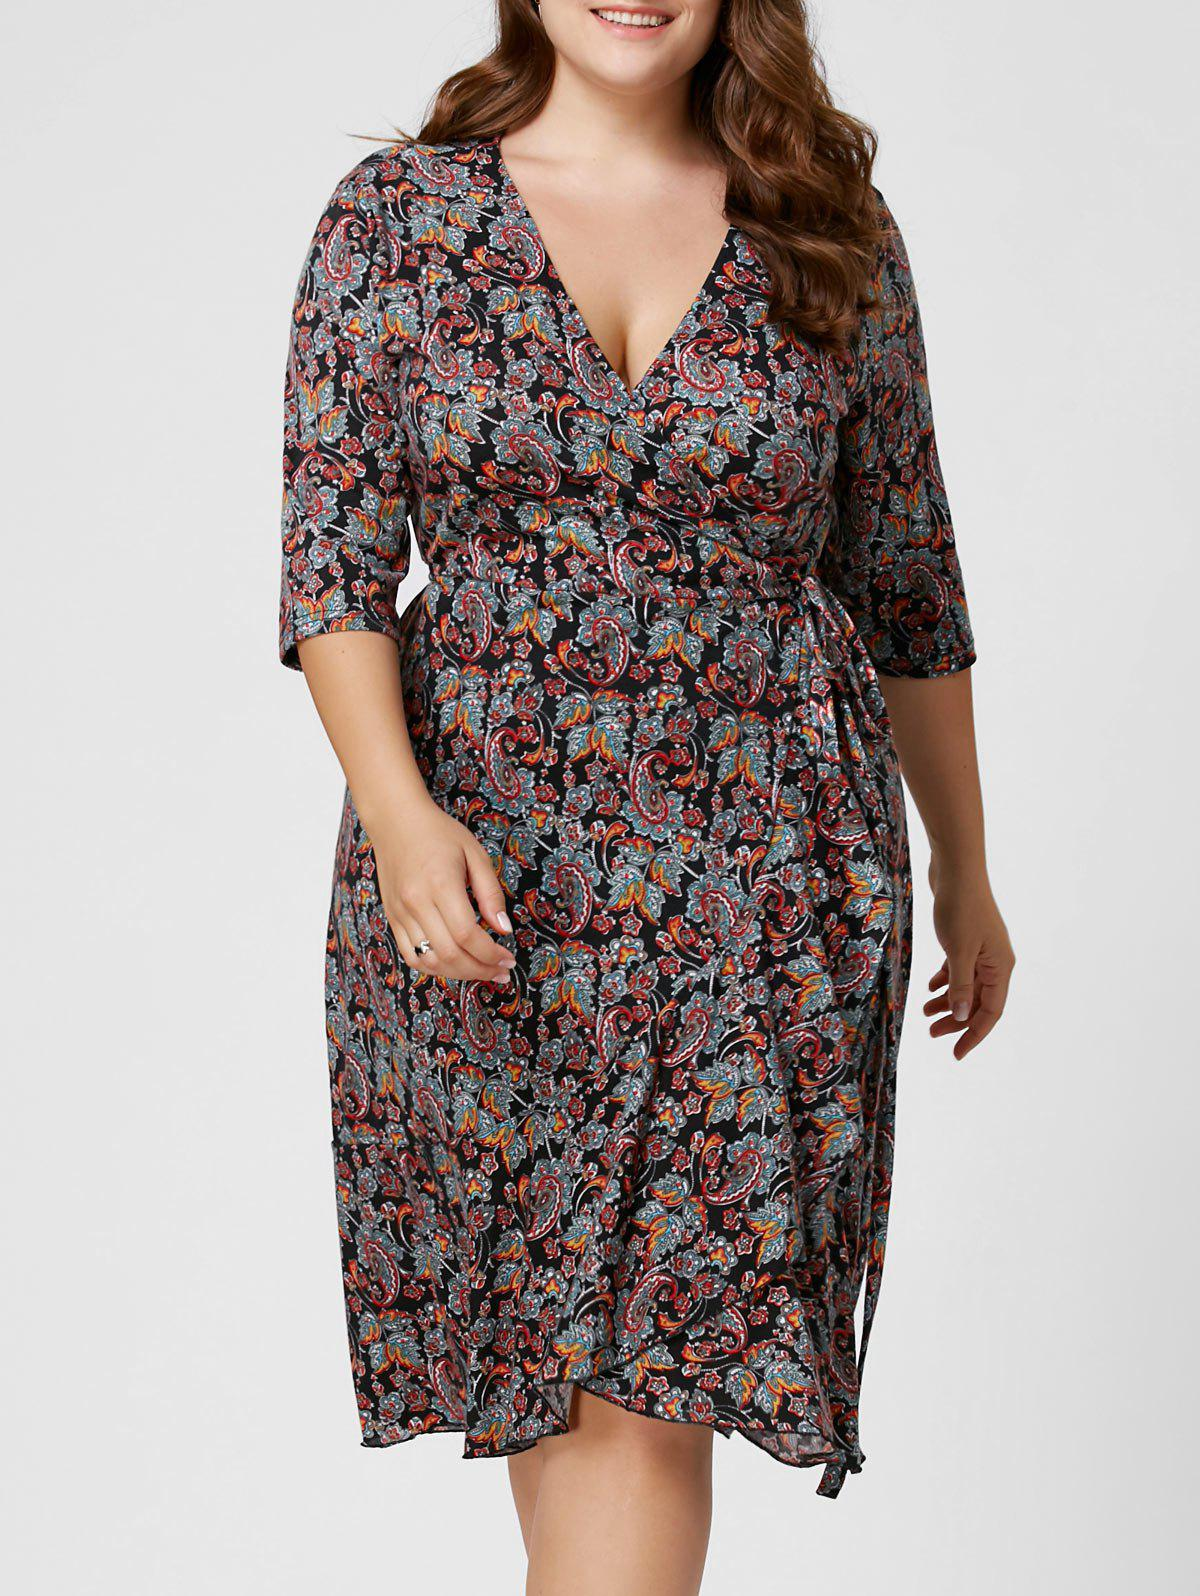 Plus Size Overlap Paisley Dress - COLORMIX 5XL